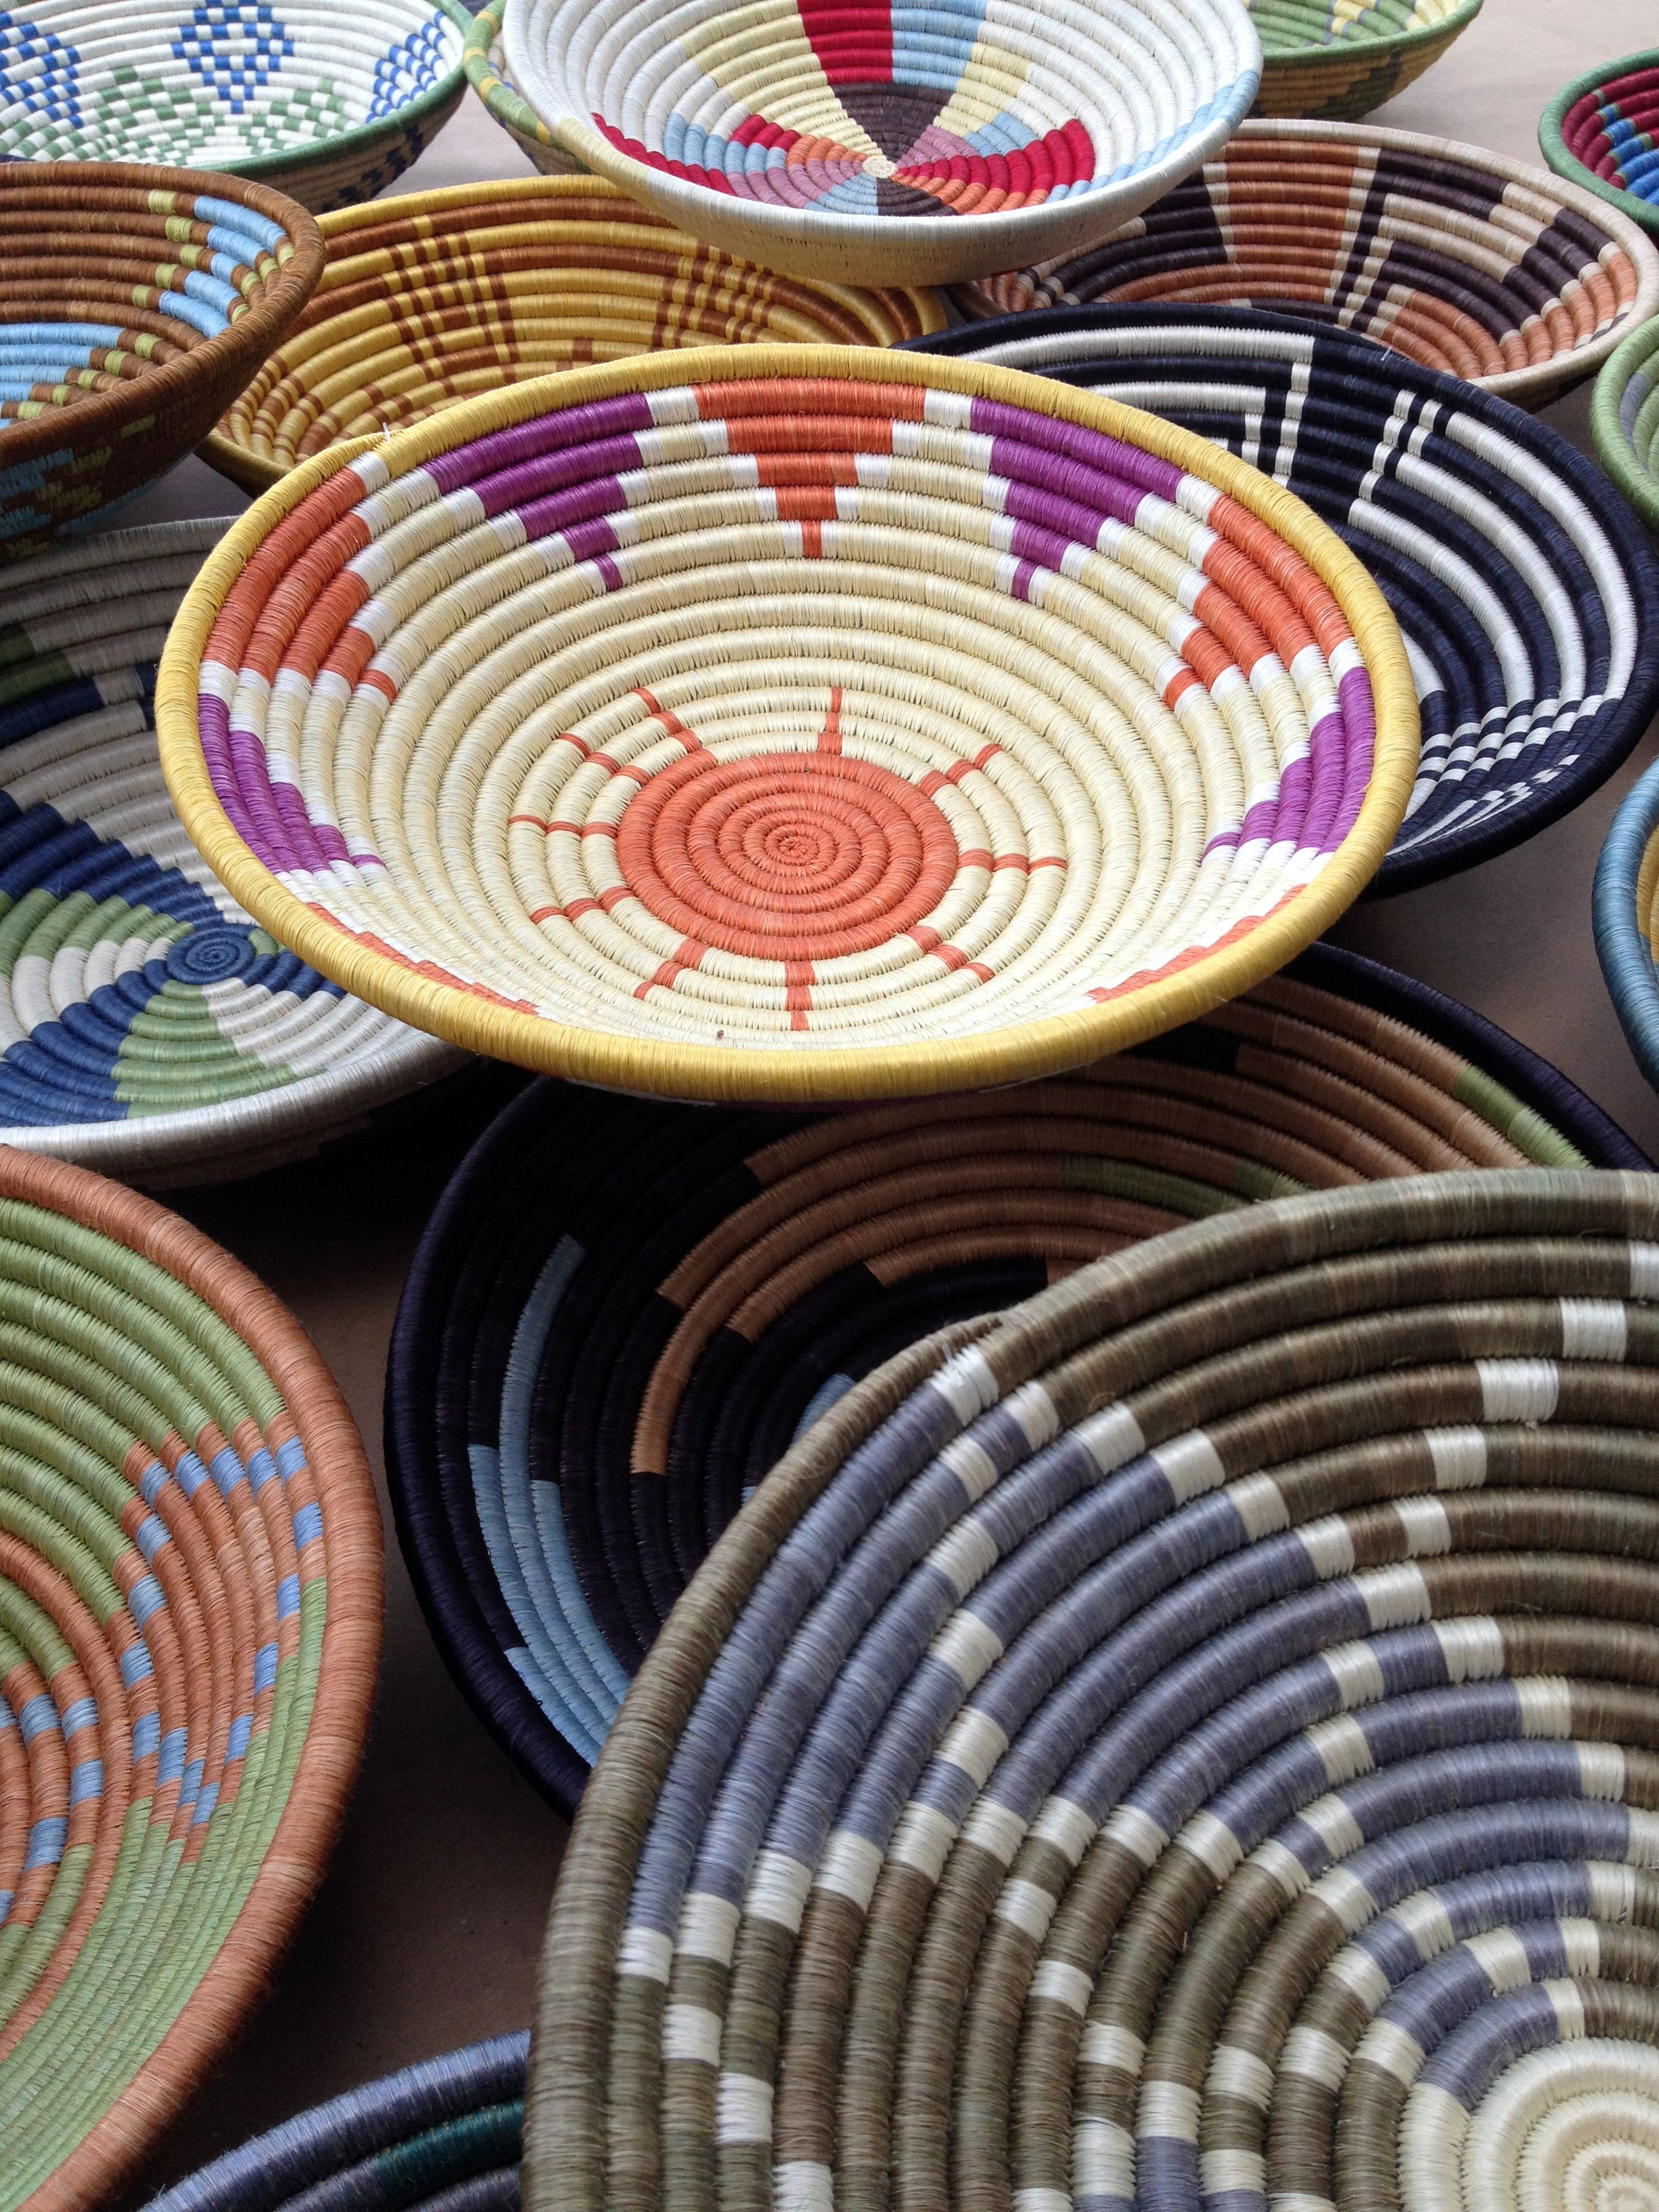 Coil Basket Weaving Patterns : Open bowl peace baskets from rwanda the colors and